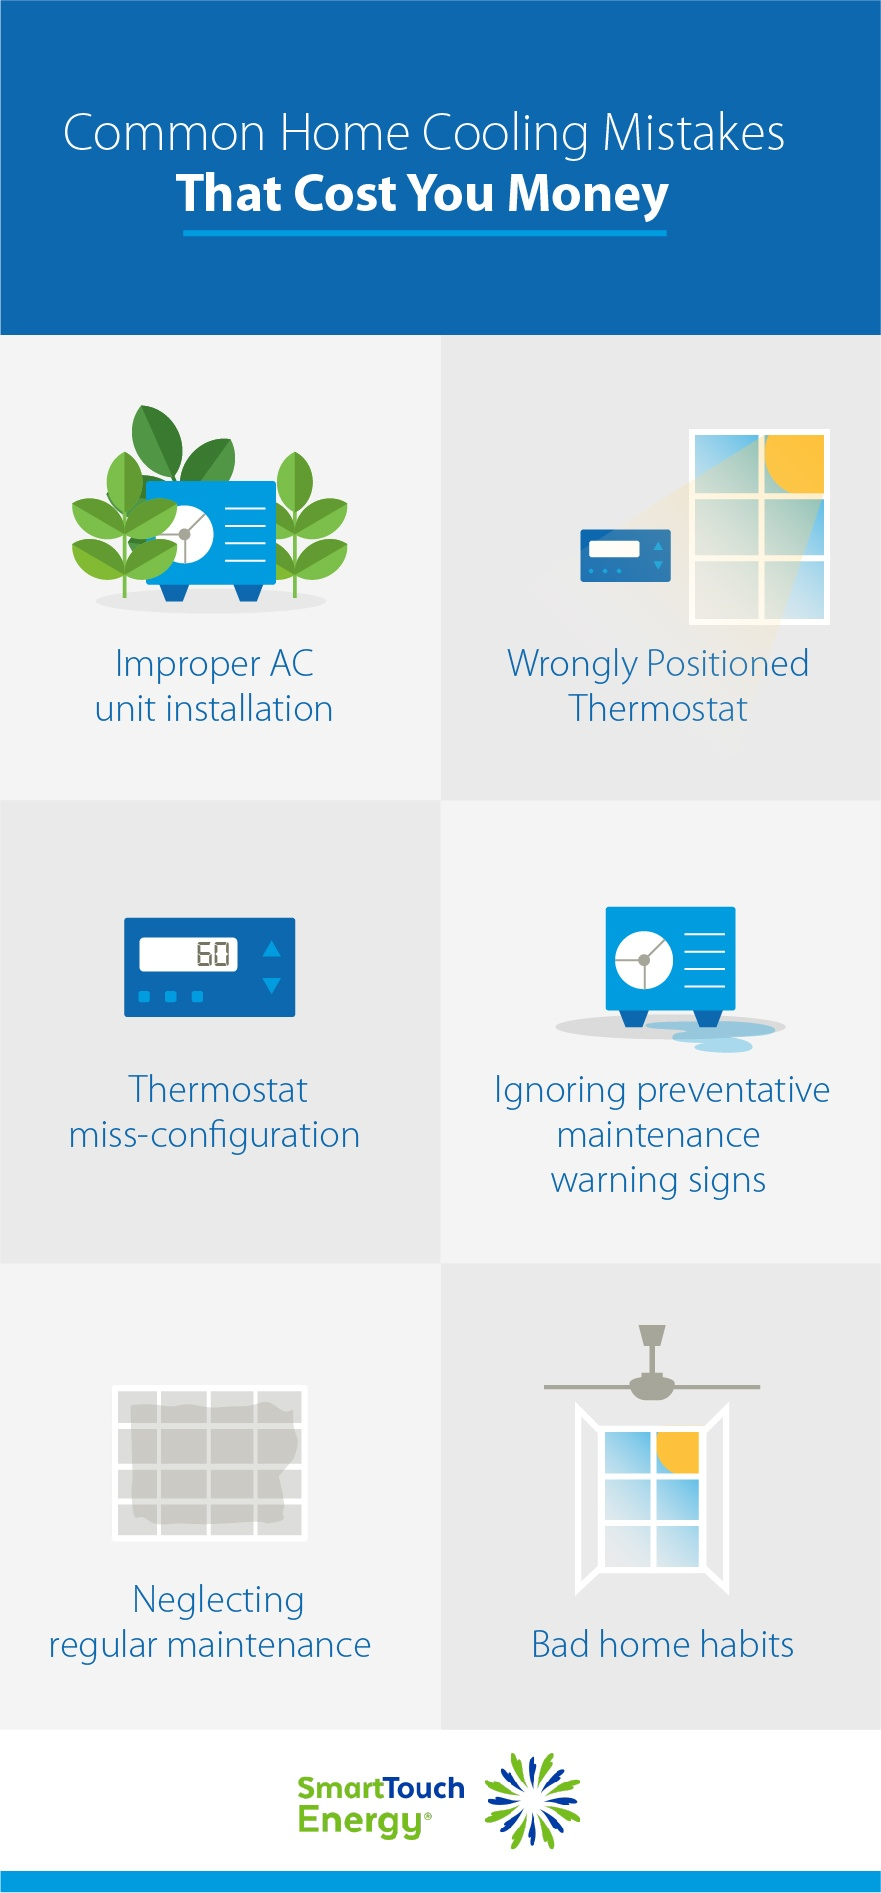 Common Home Cooling Mistakes That Cost You Money